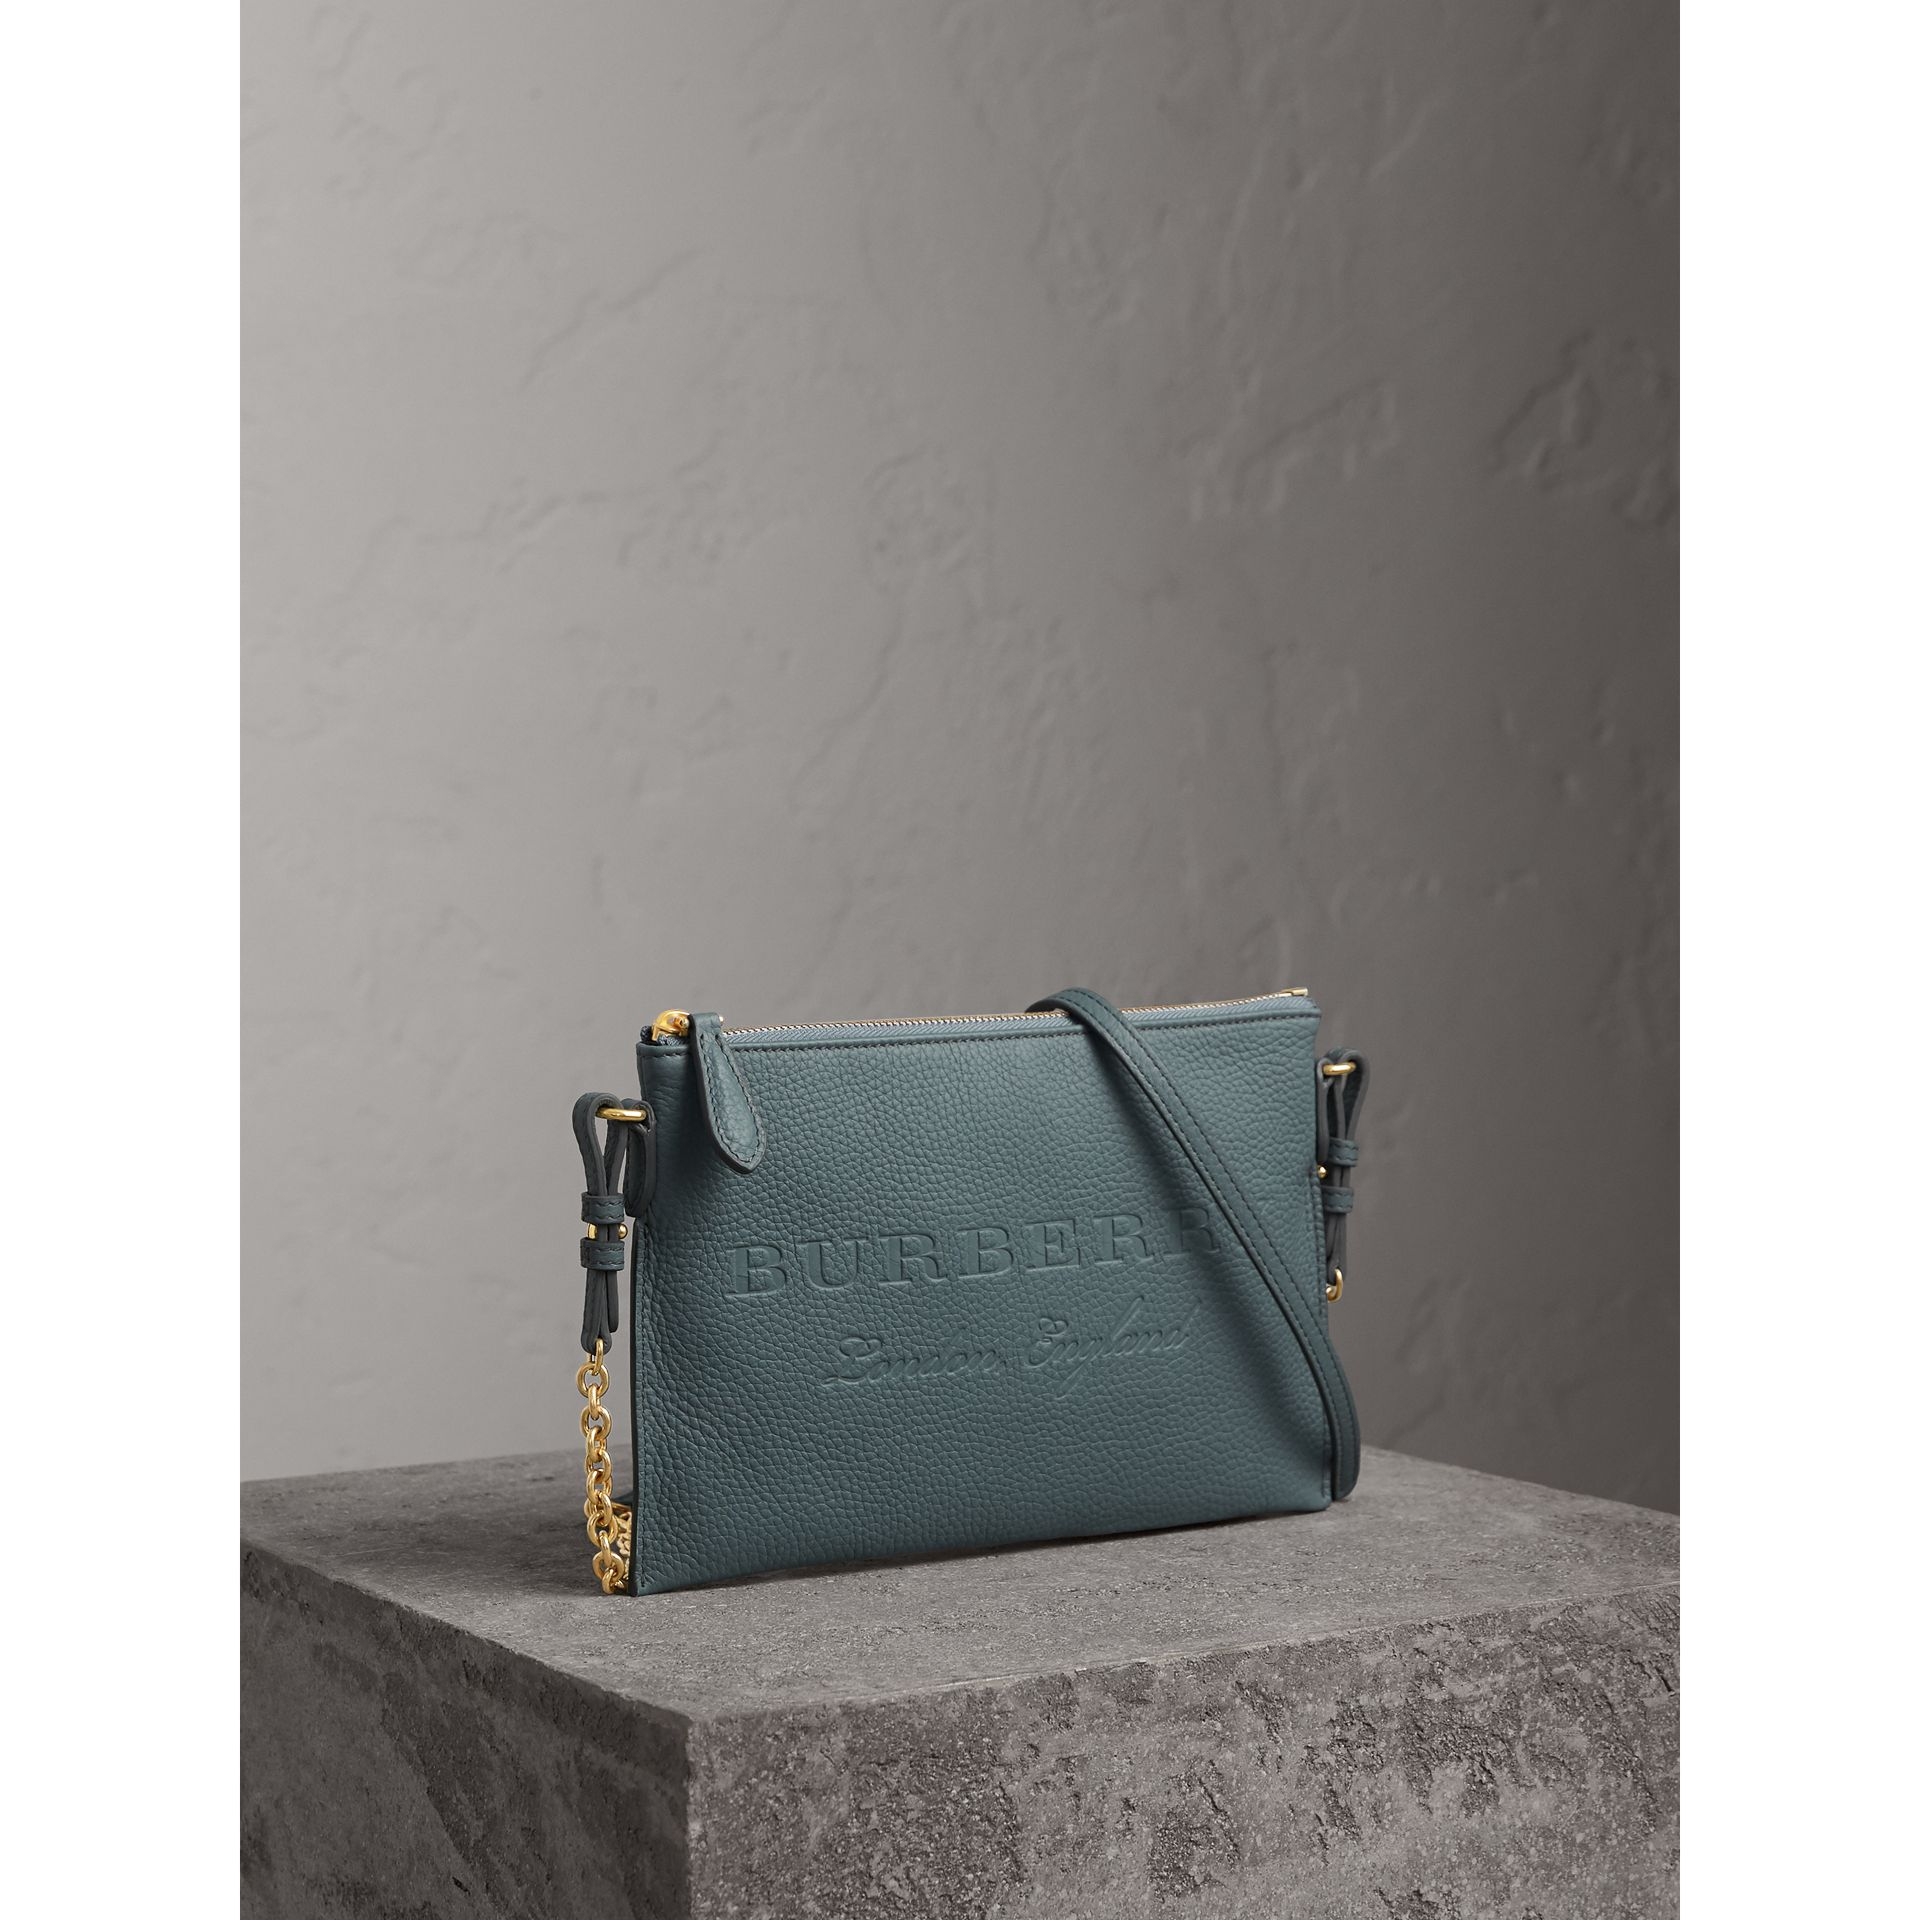 Embossed Leather Clutch Bag in Dusty Teal Blue - Women | Burberry United States - gallery image 6